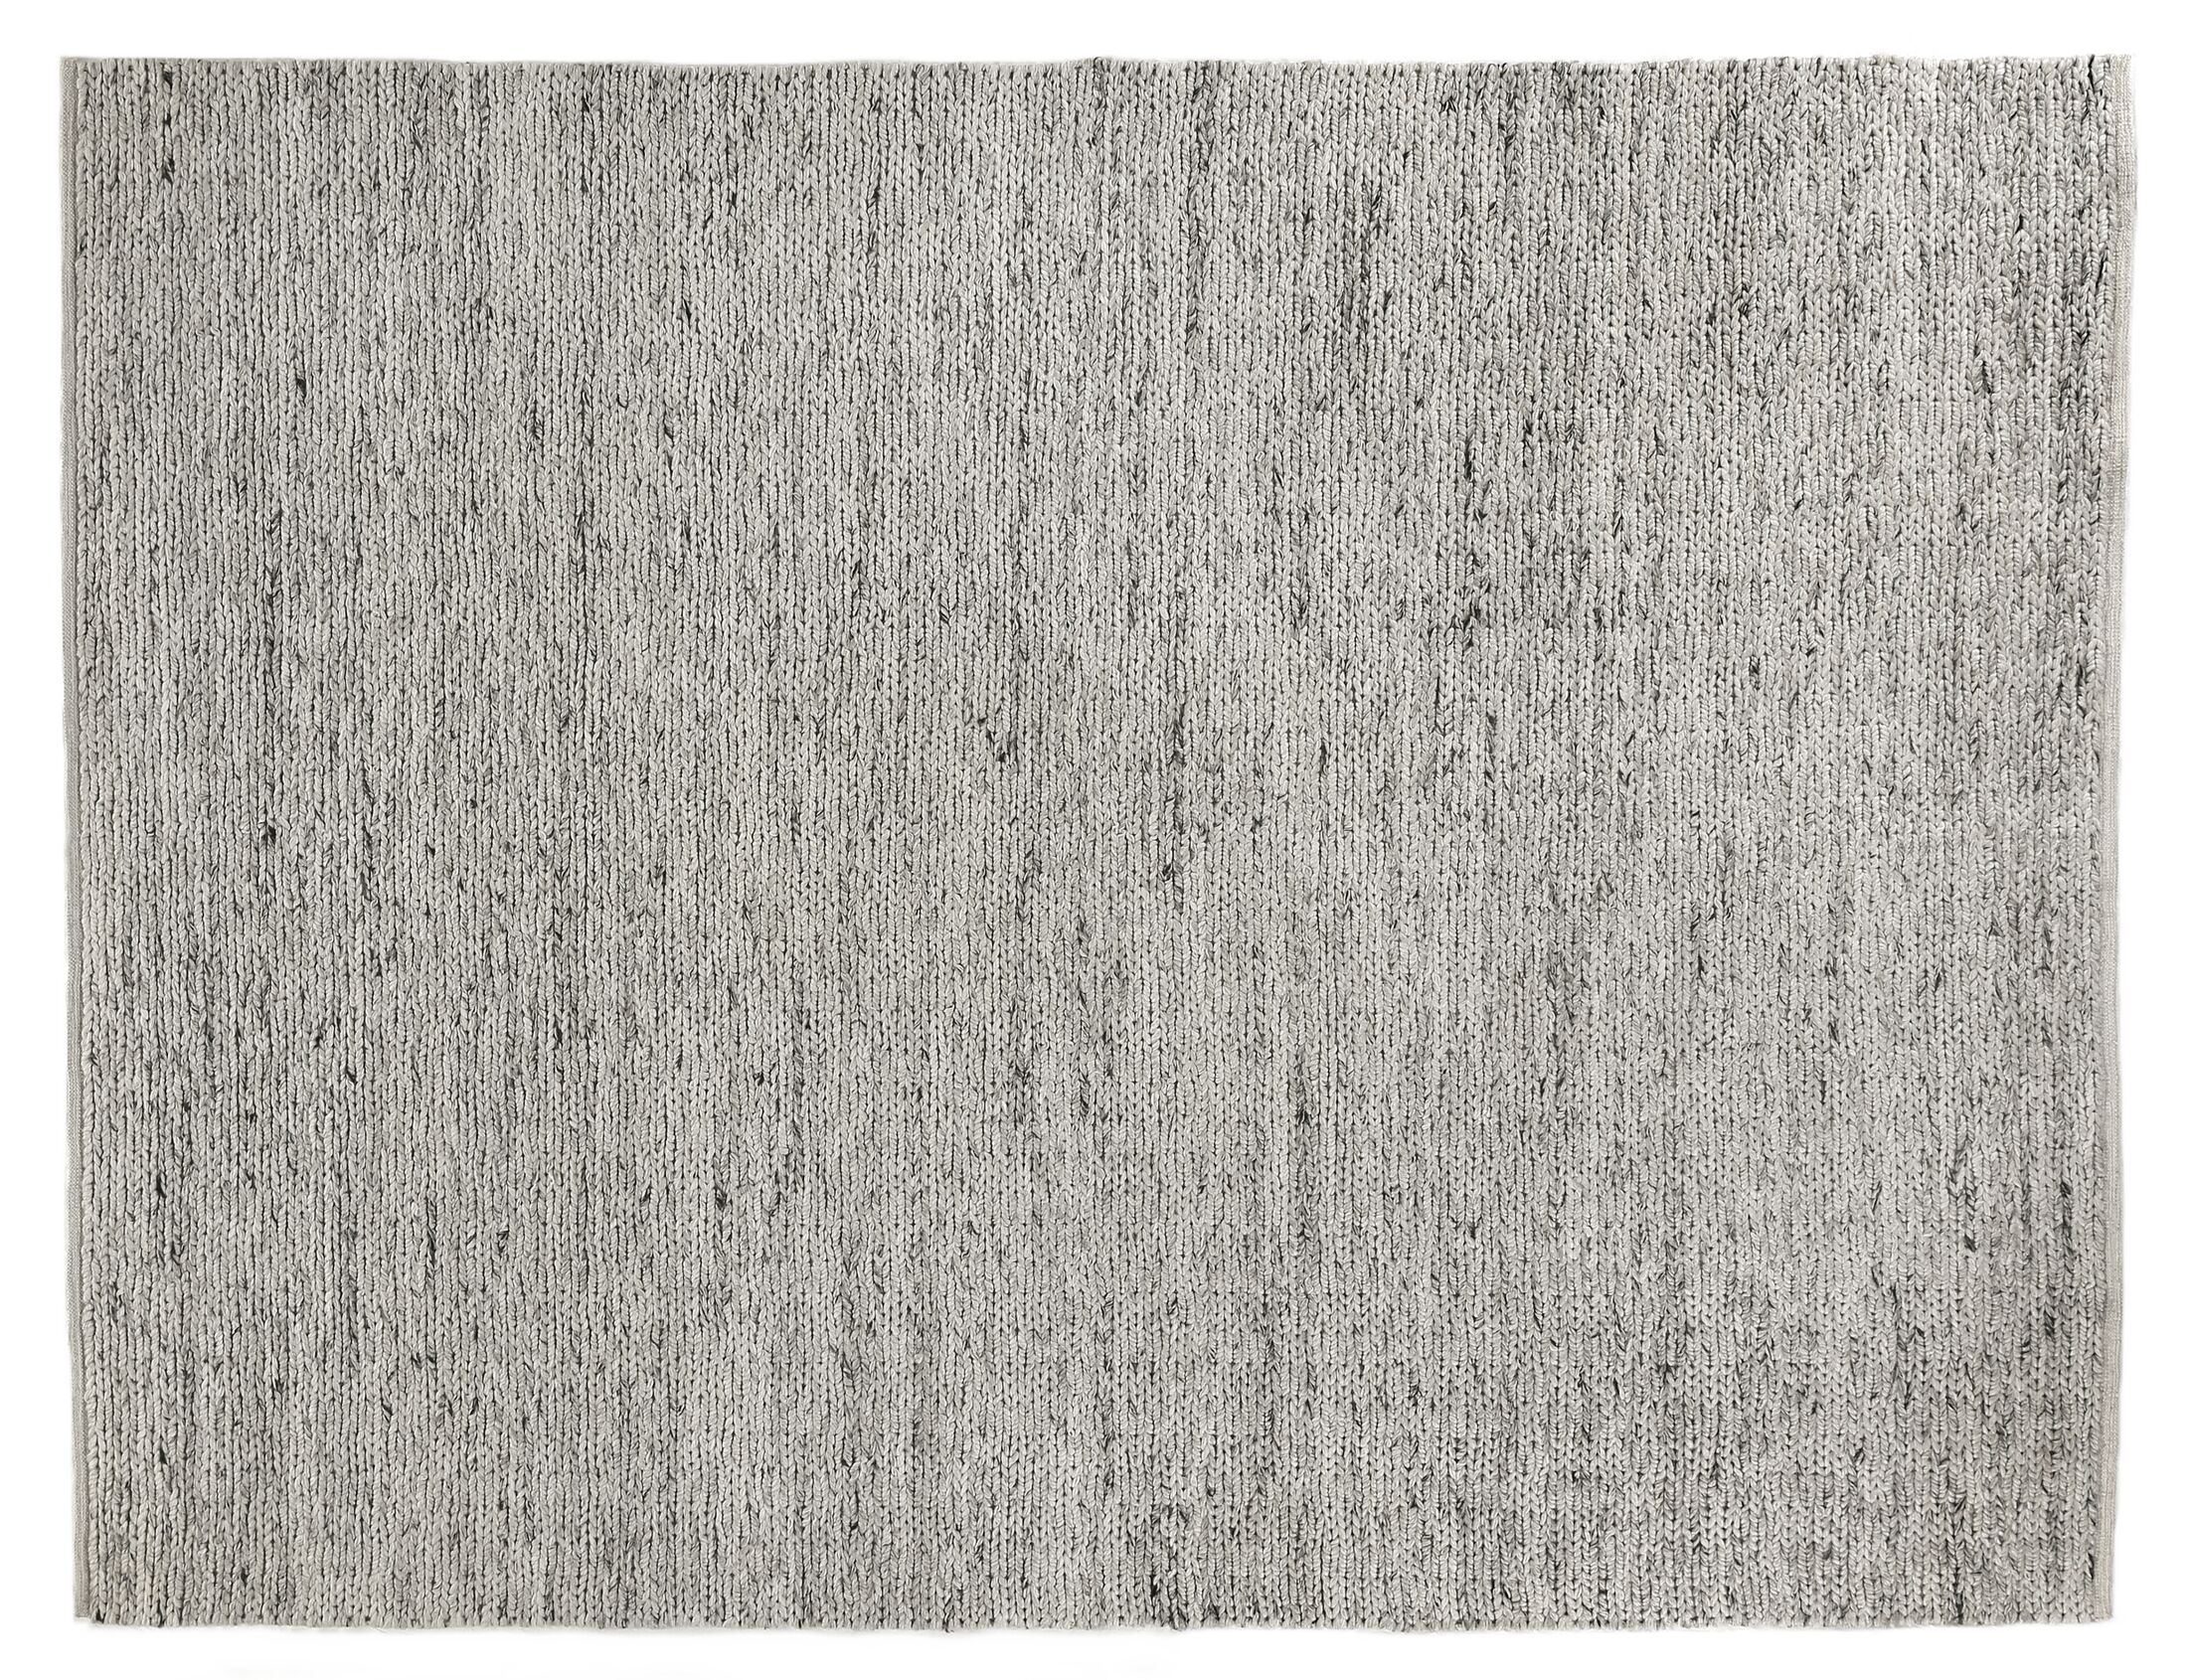 Lauryn Hand-Woven Silver Area Rug Rug Size: Rectangle 10' x 14'